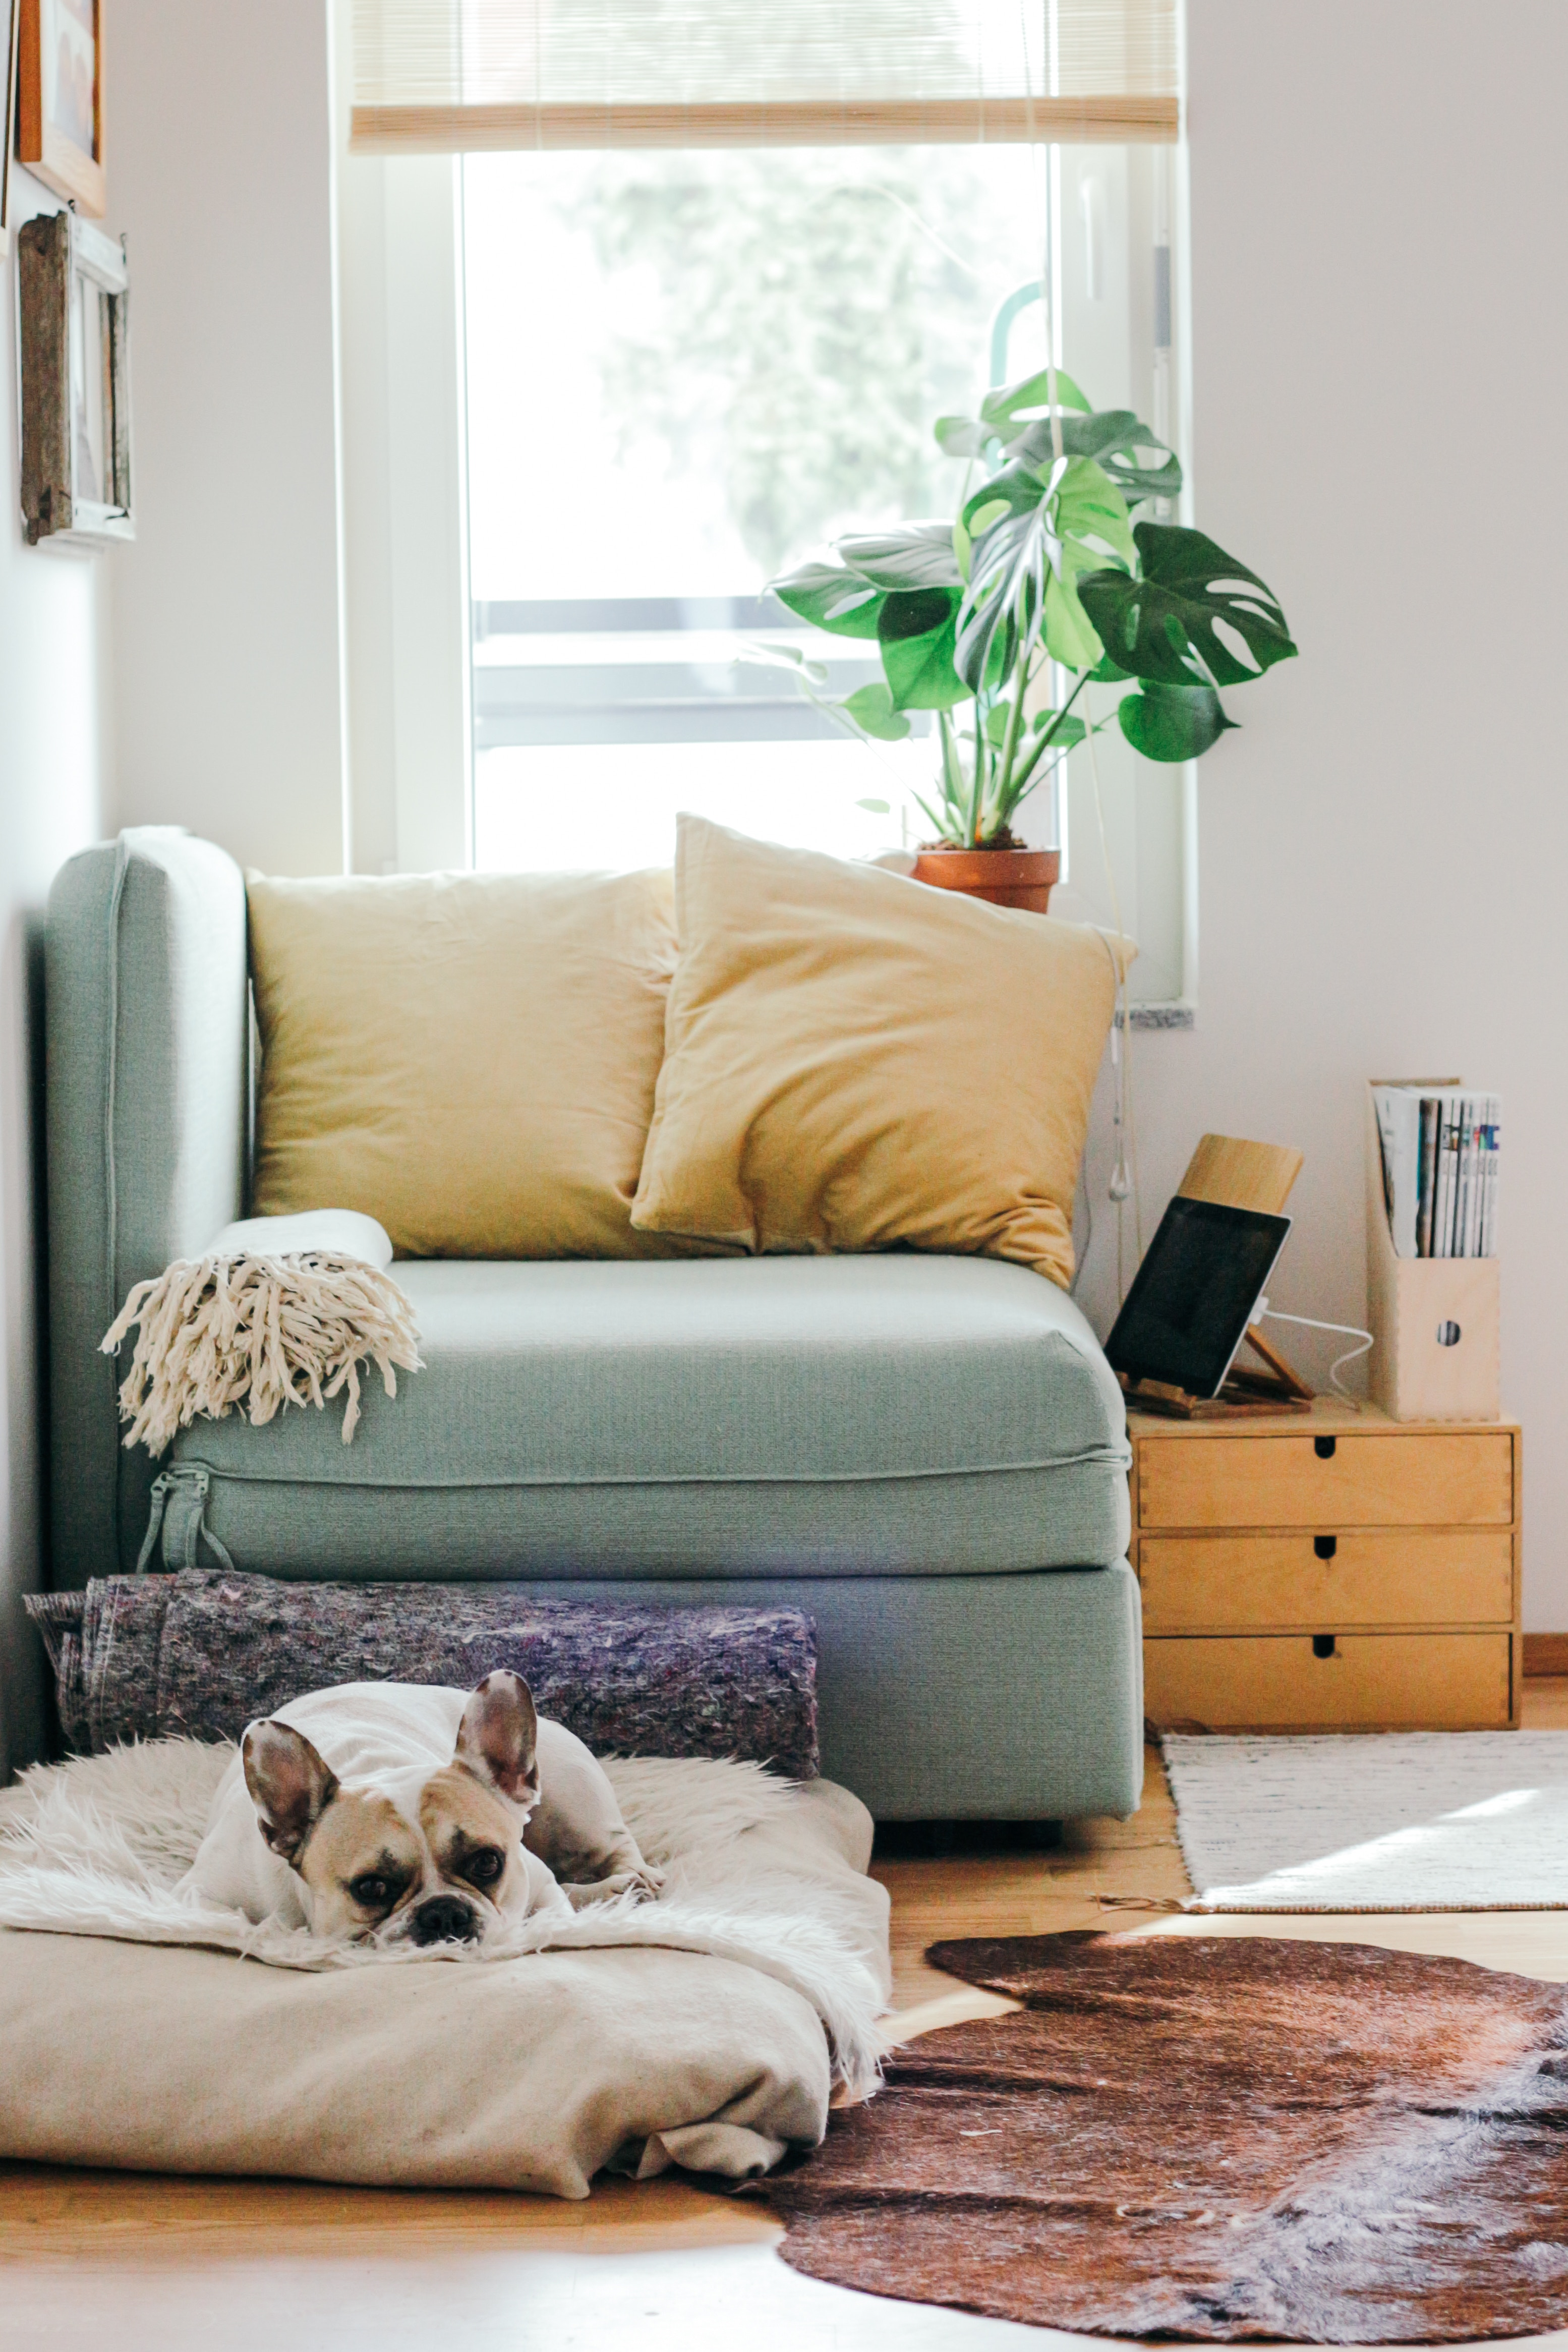 7 Apartment Decorating Ideas To Make Your Rental Feel More Like Home /// By